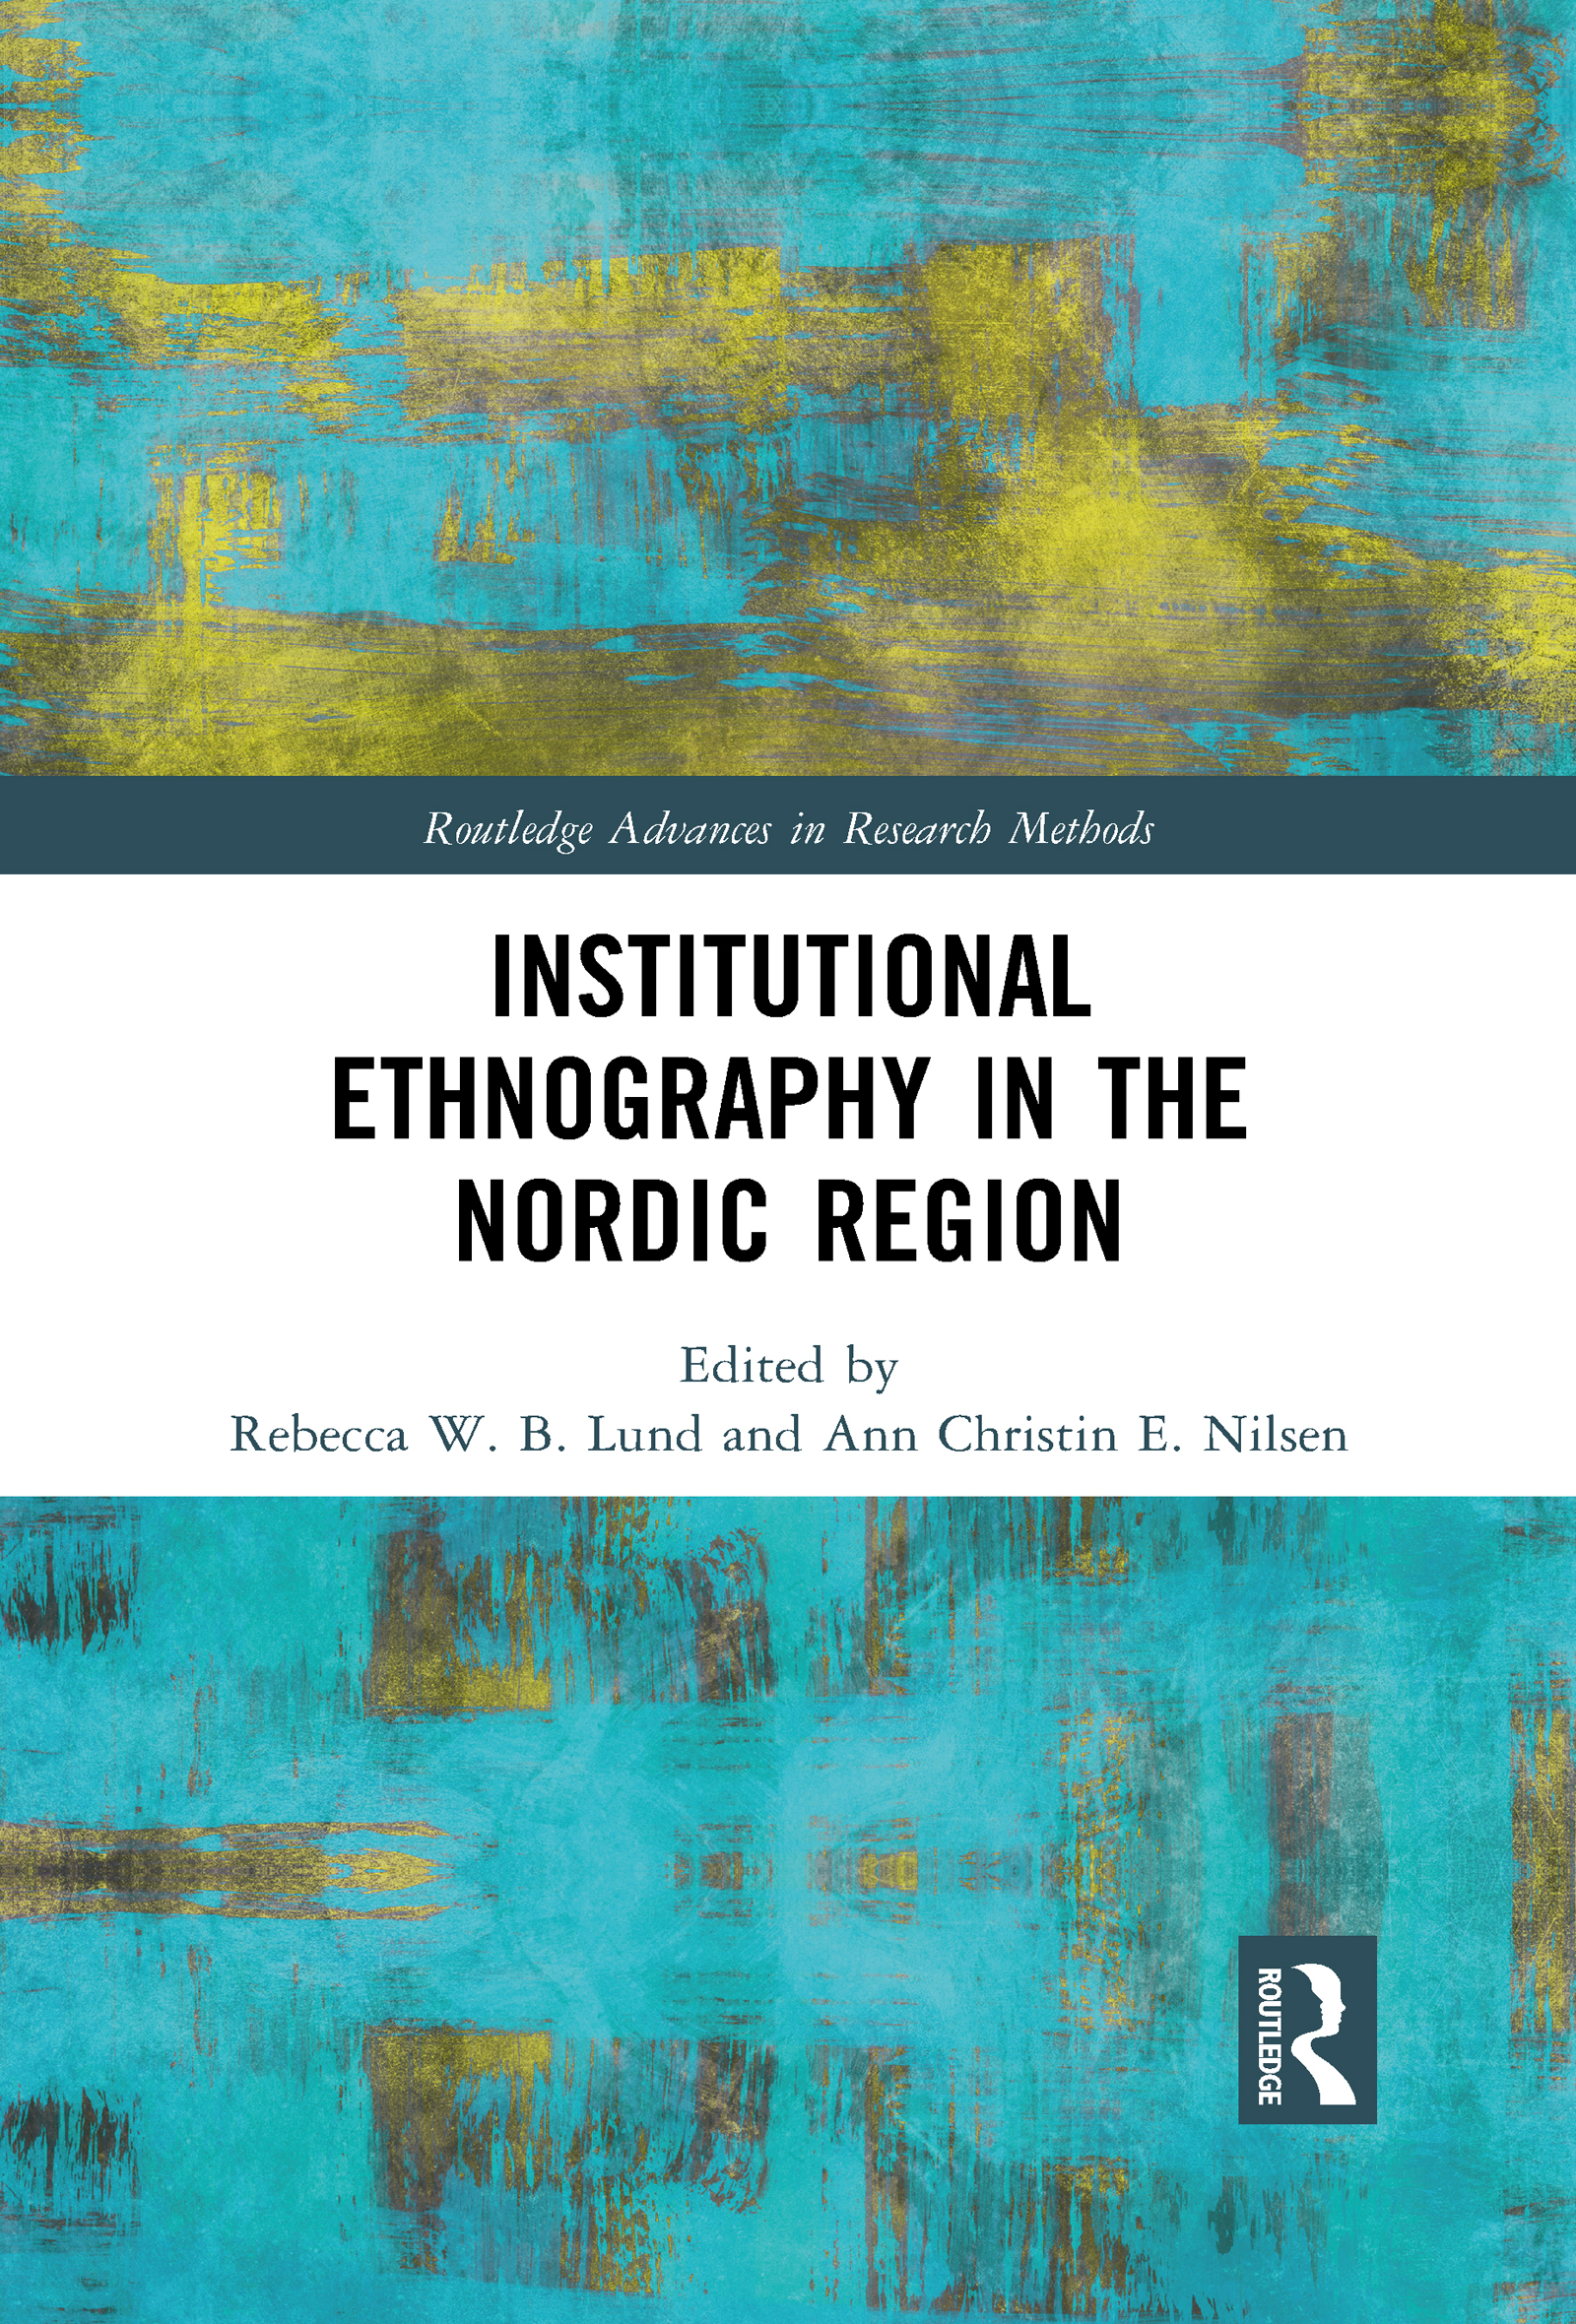 Institutional Ethnography in the Nordic Region